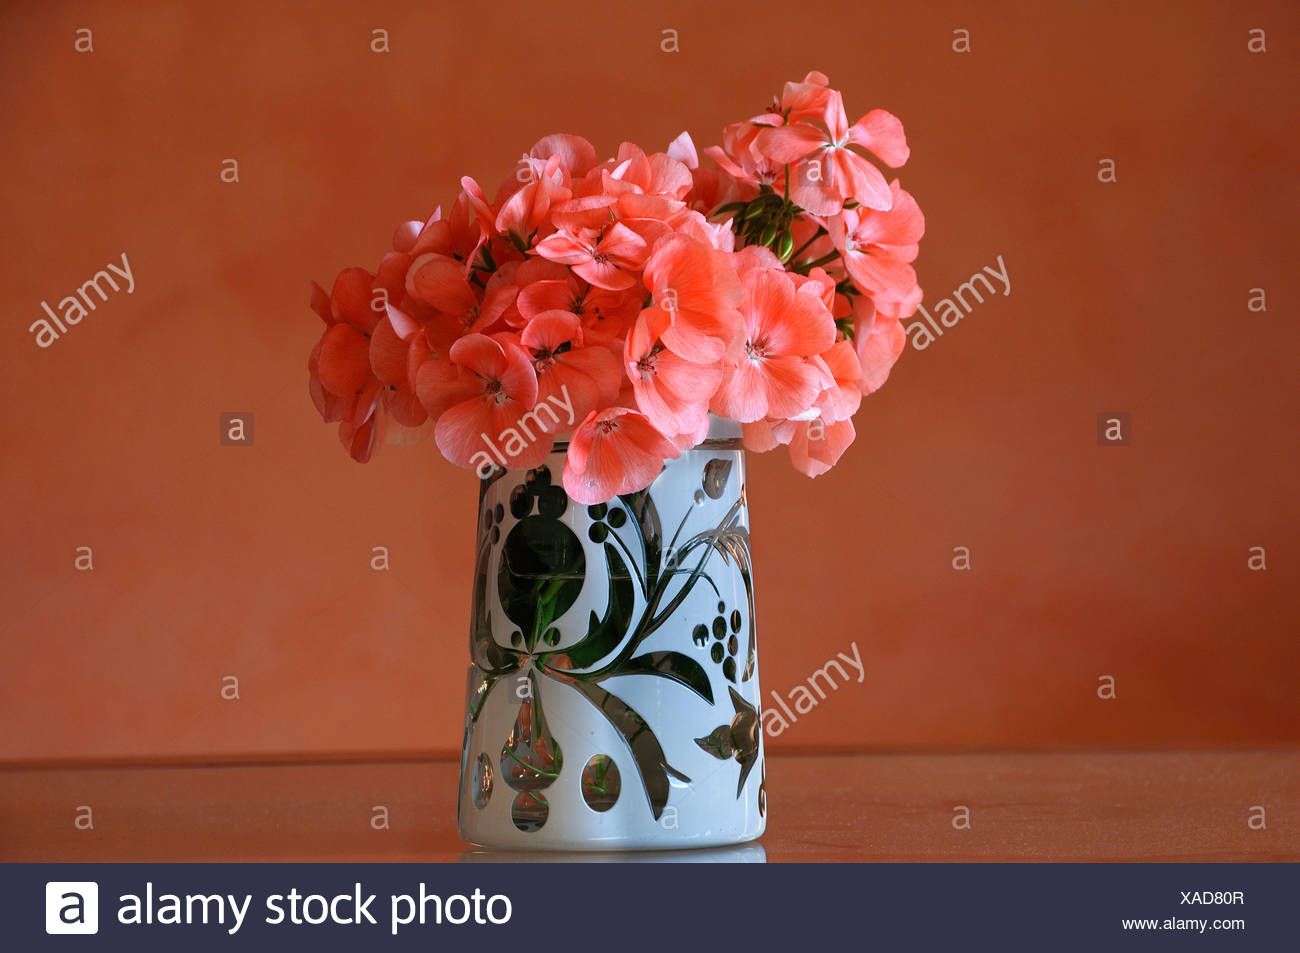 Hortensia Hydrangea Flowers Blooms Stock Photos & Hortensia ...